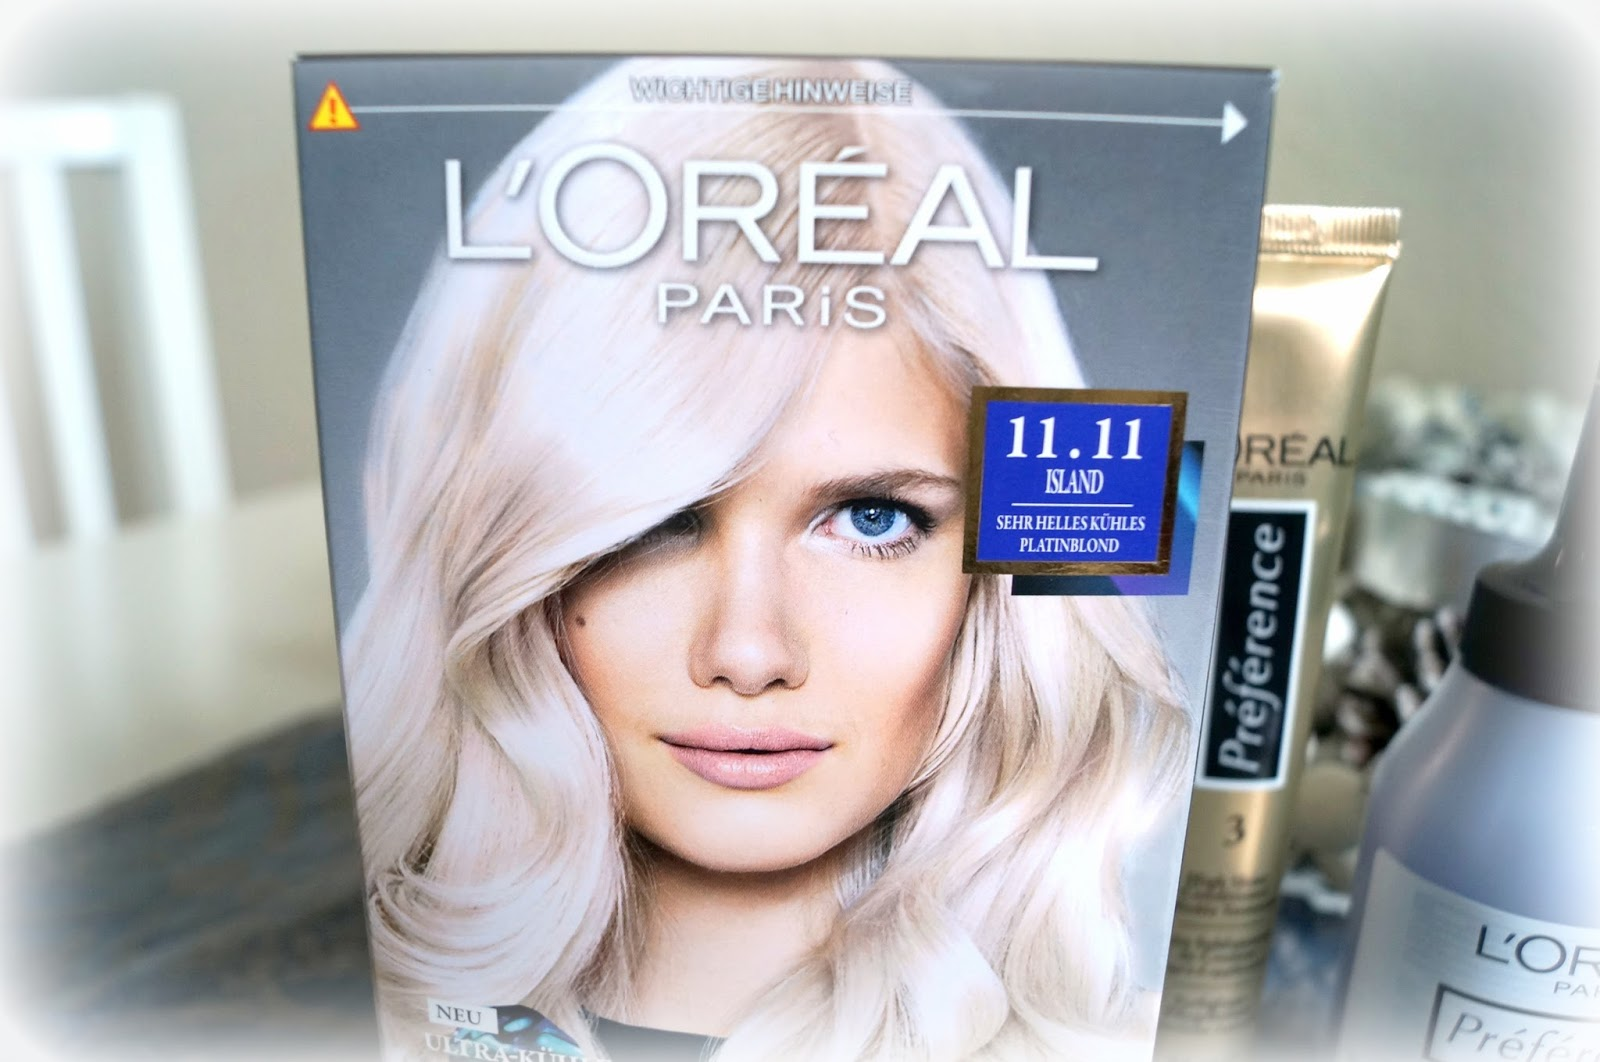 Waste Your Time And Money 155 Review Haare Farben Mit L Oreal Paris